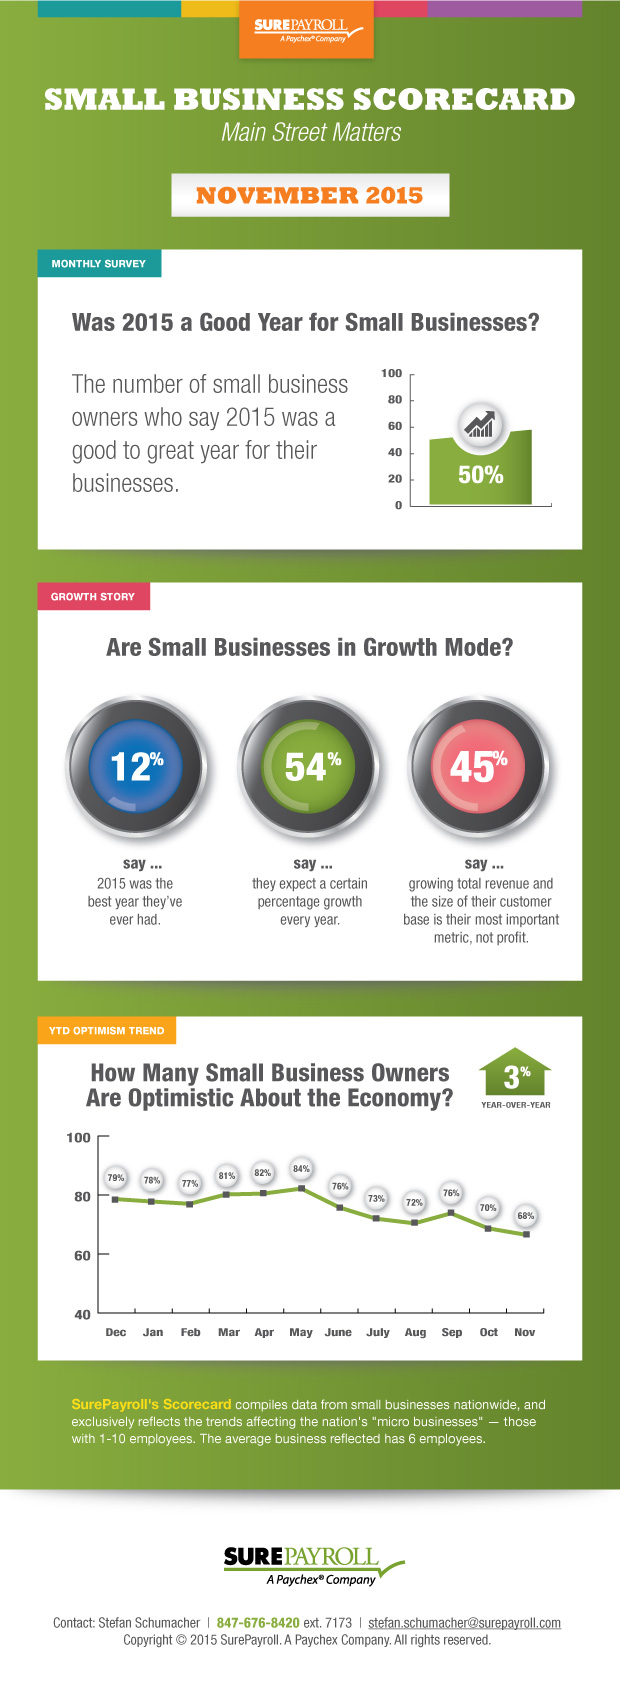 surepayroll small business scorecard november 2015